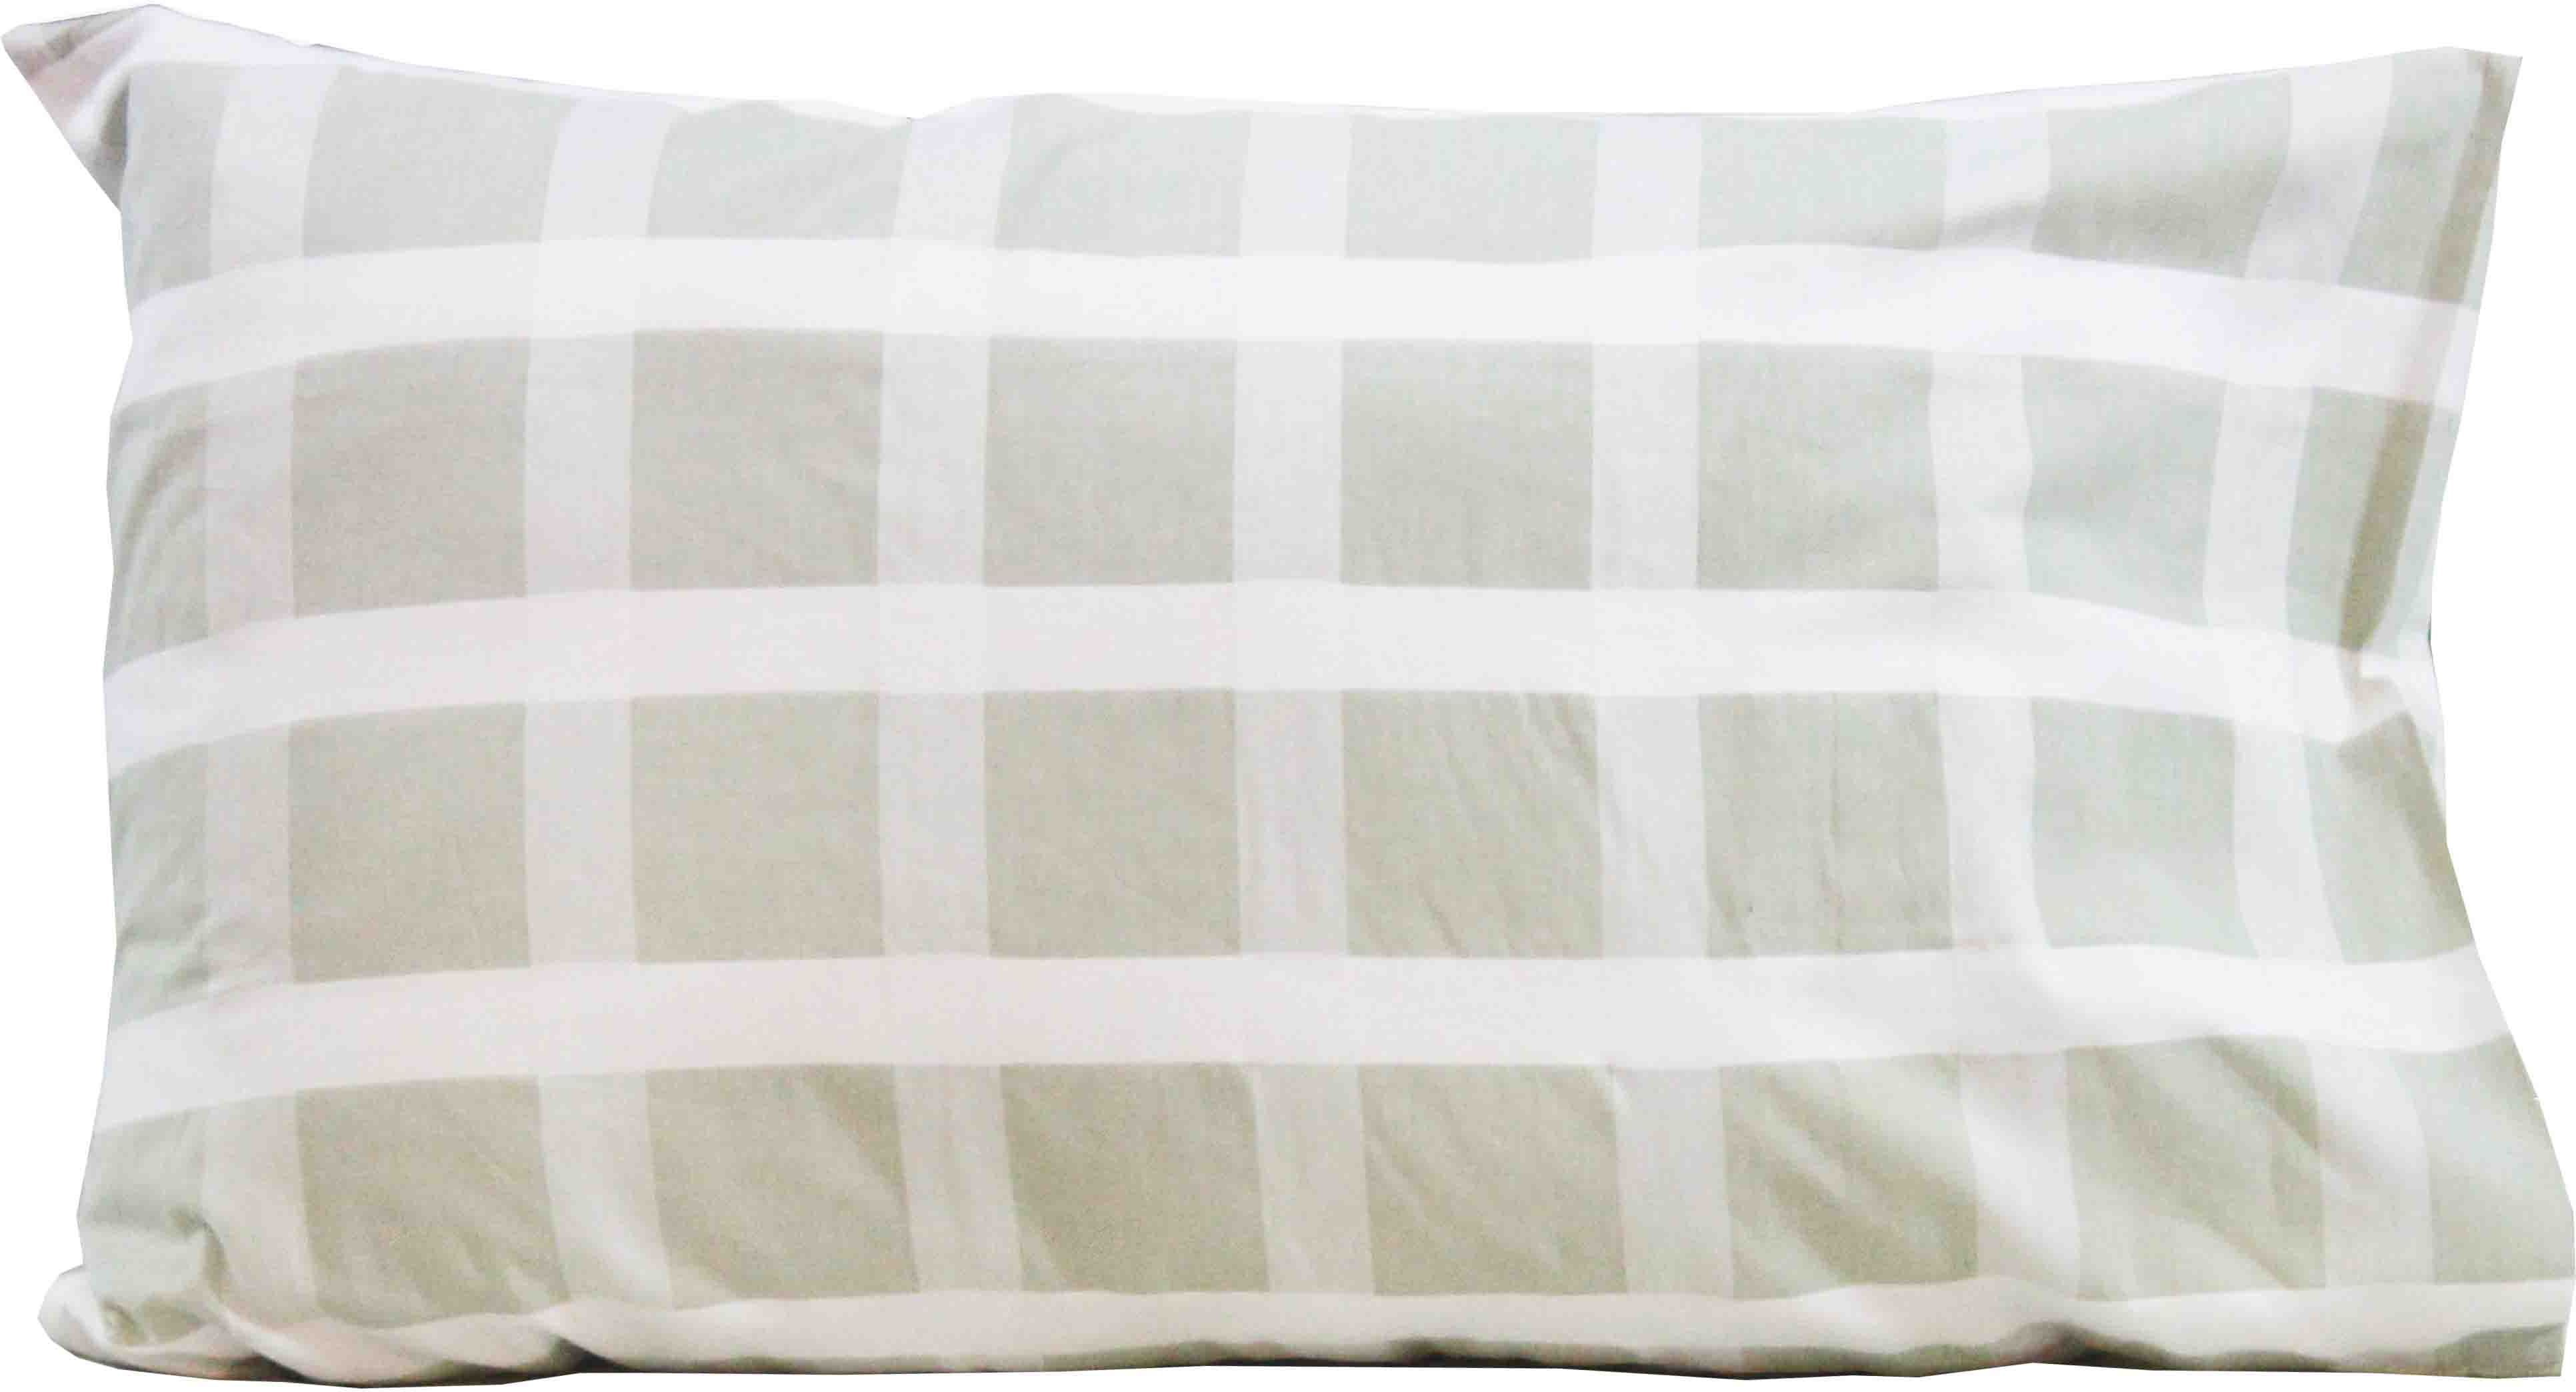 Milano Home Embroidered Pillows Cover